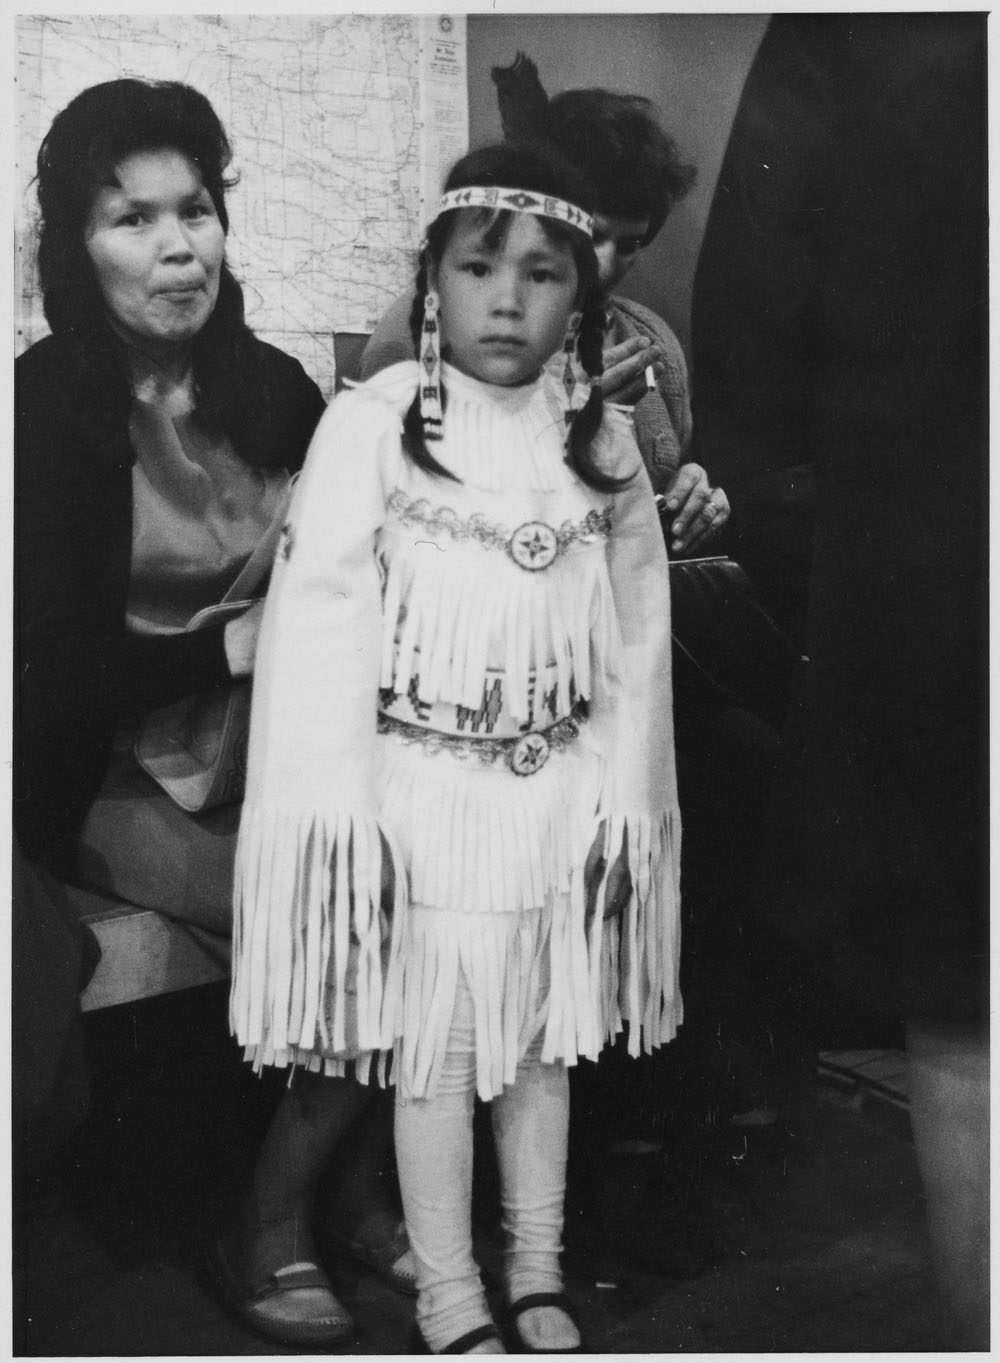 Mother with daughter wearing regalia